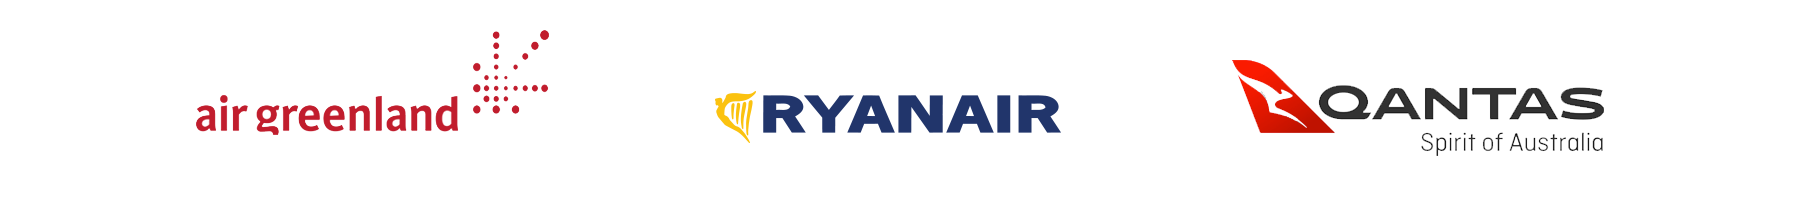 Commercial Partners Air Greenland, Ryanair and Qantas